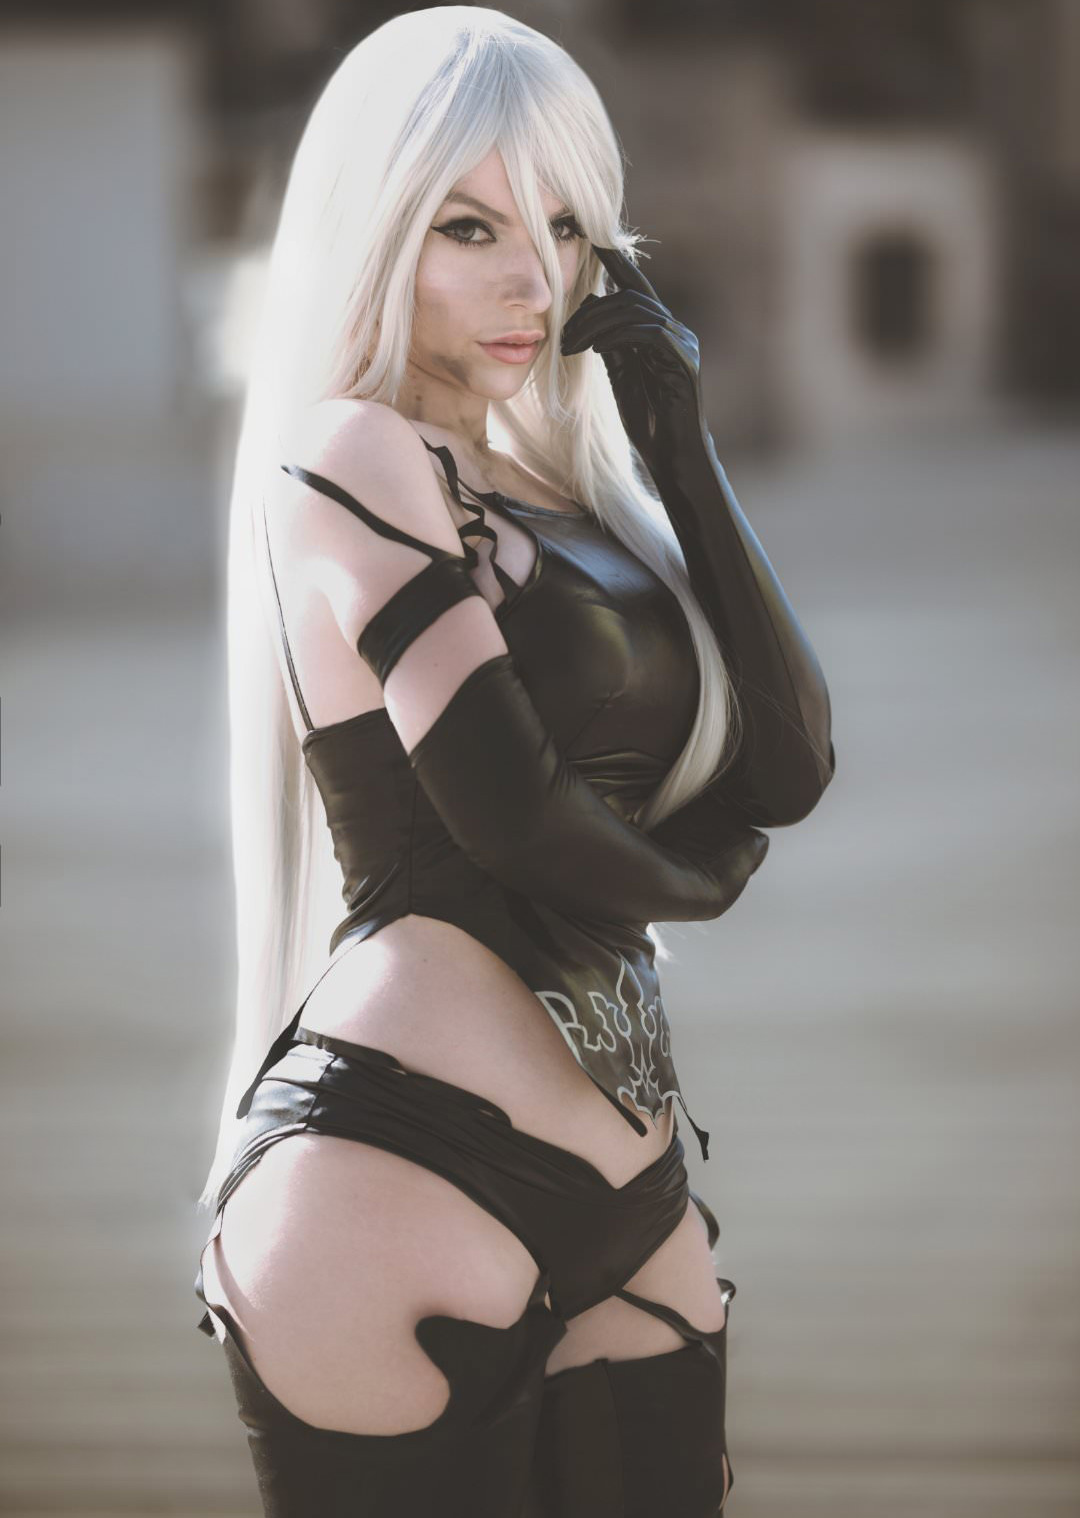 katyuska moonfox great look